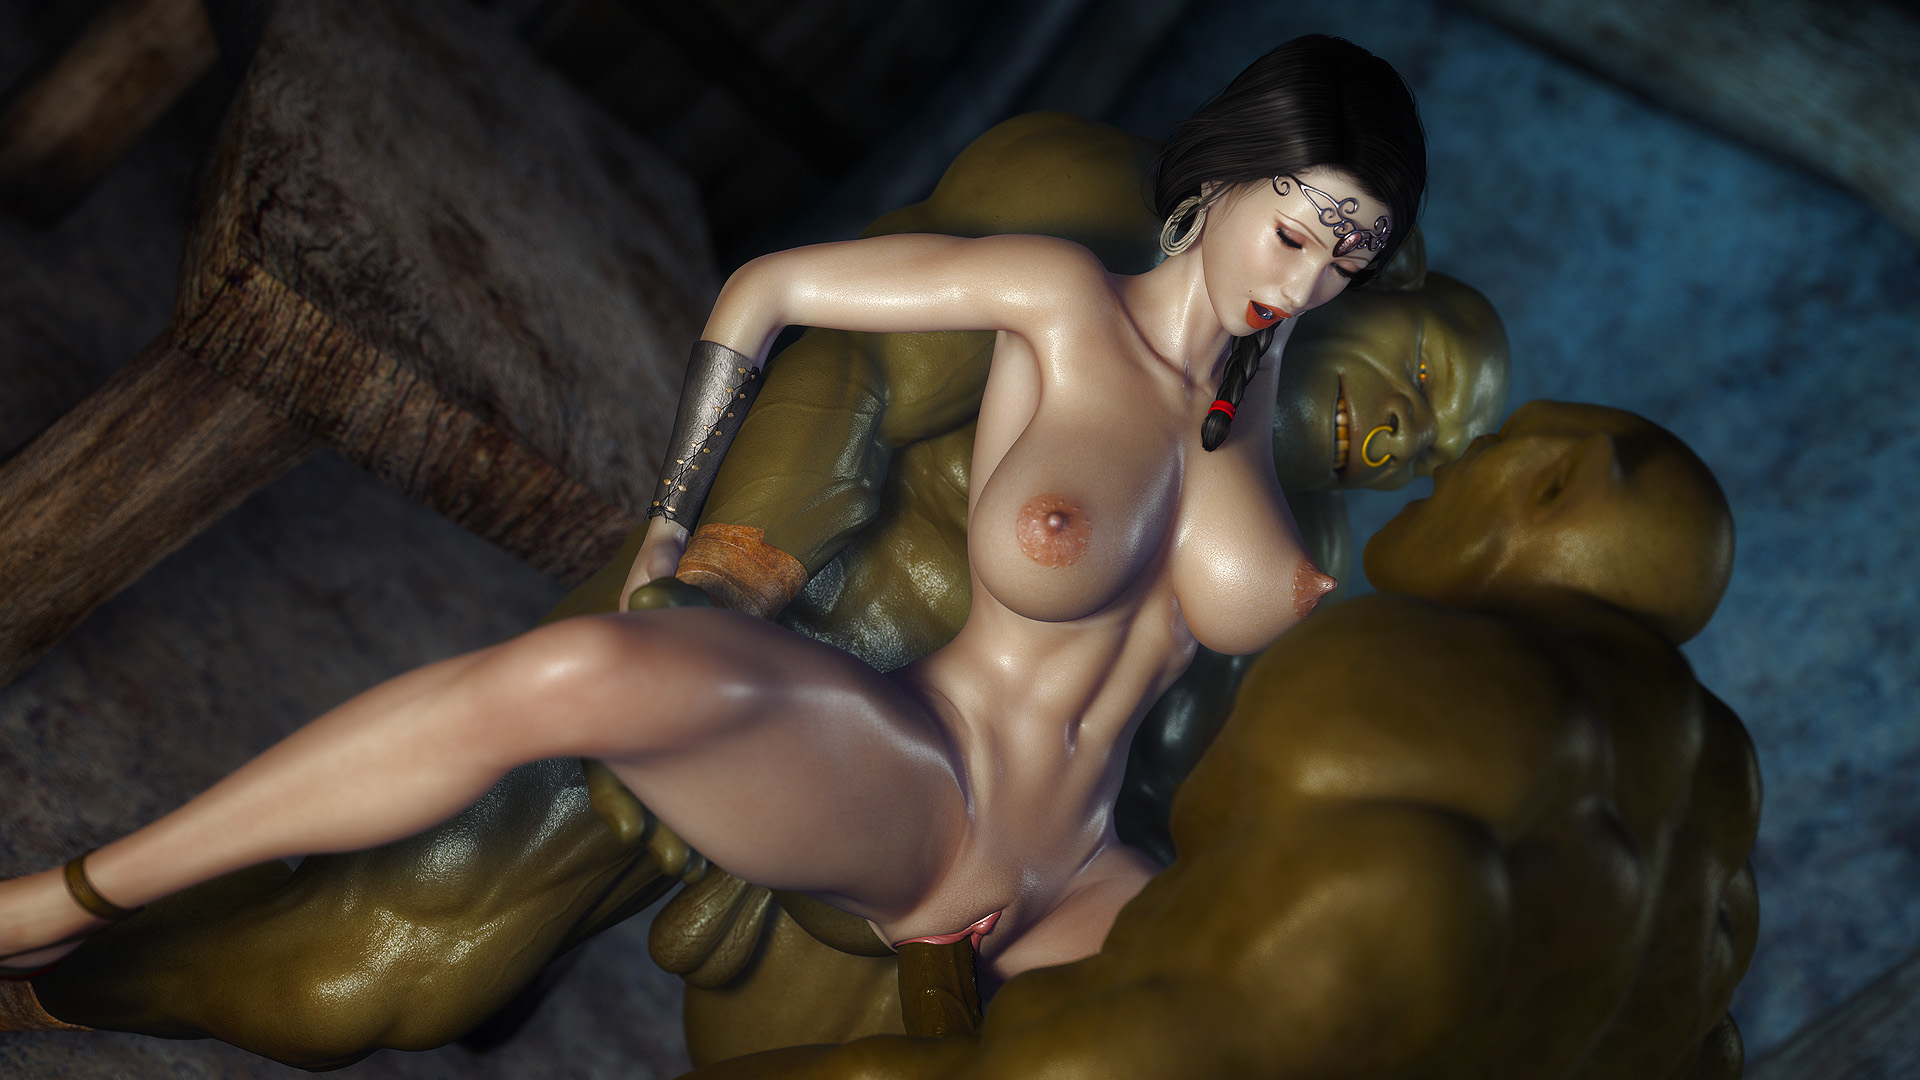 Free3d monster pron gif porn toons